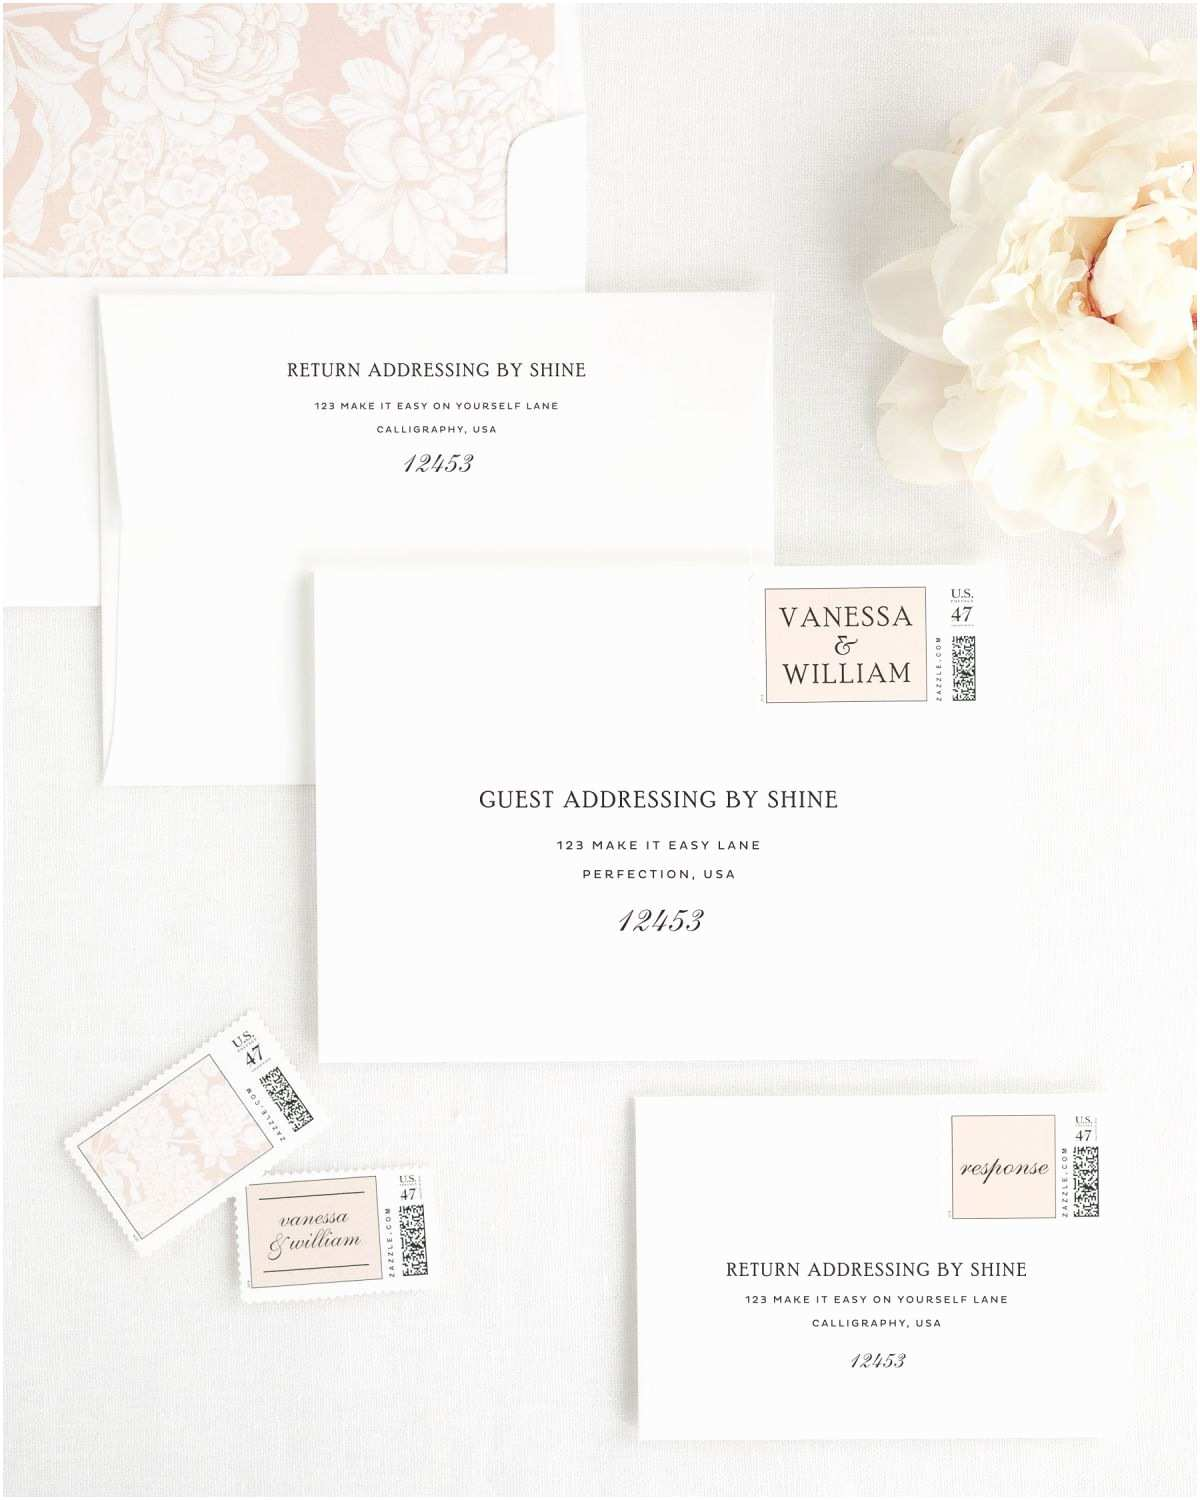 Simple Elegant Wedding Invitations Simple Wedding Invitations In Black and White Wedding